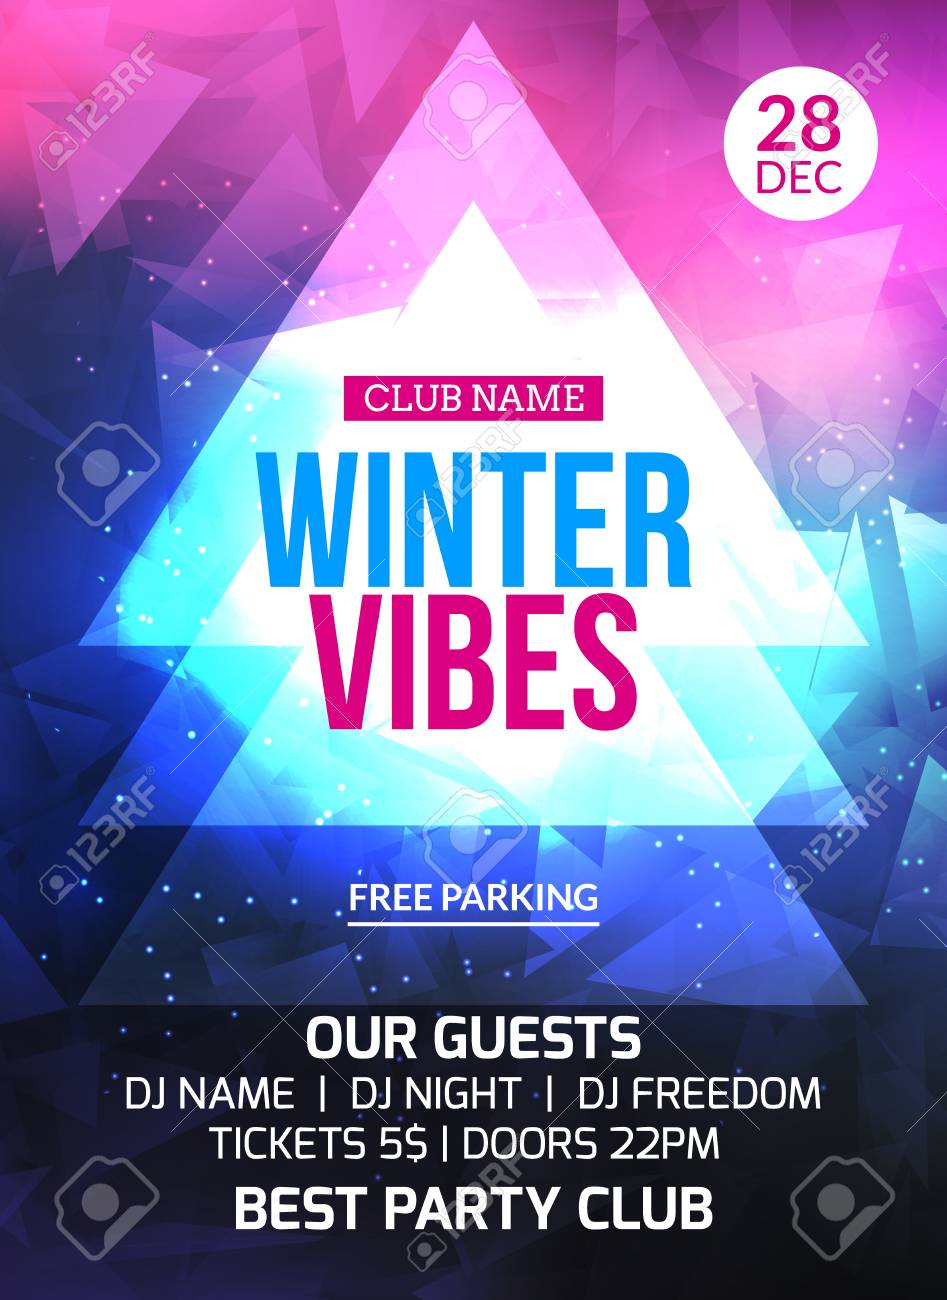 2018 New Year Winter Party Celebration Flyer Design Template